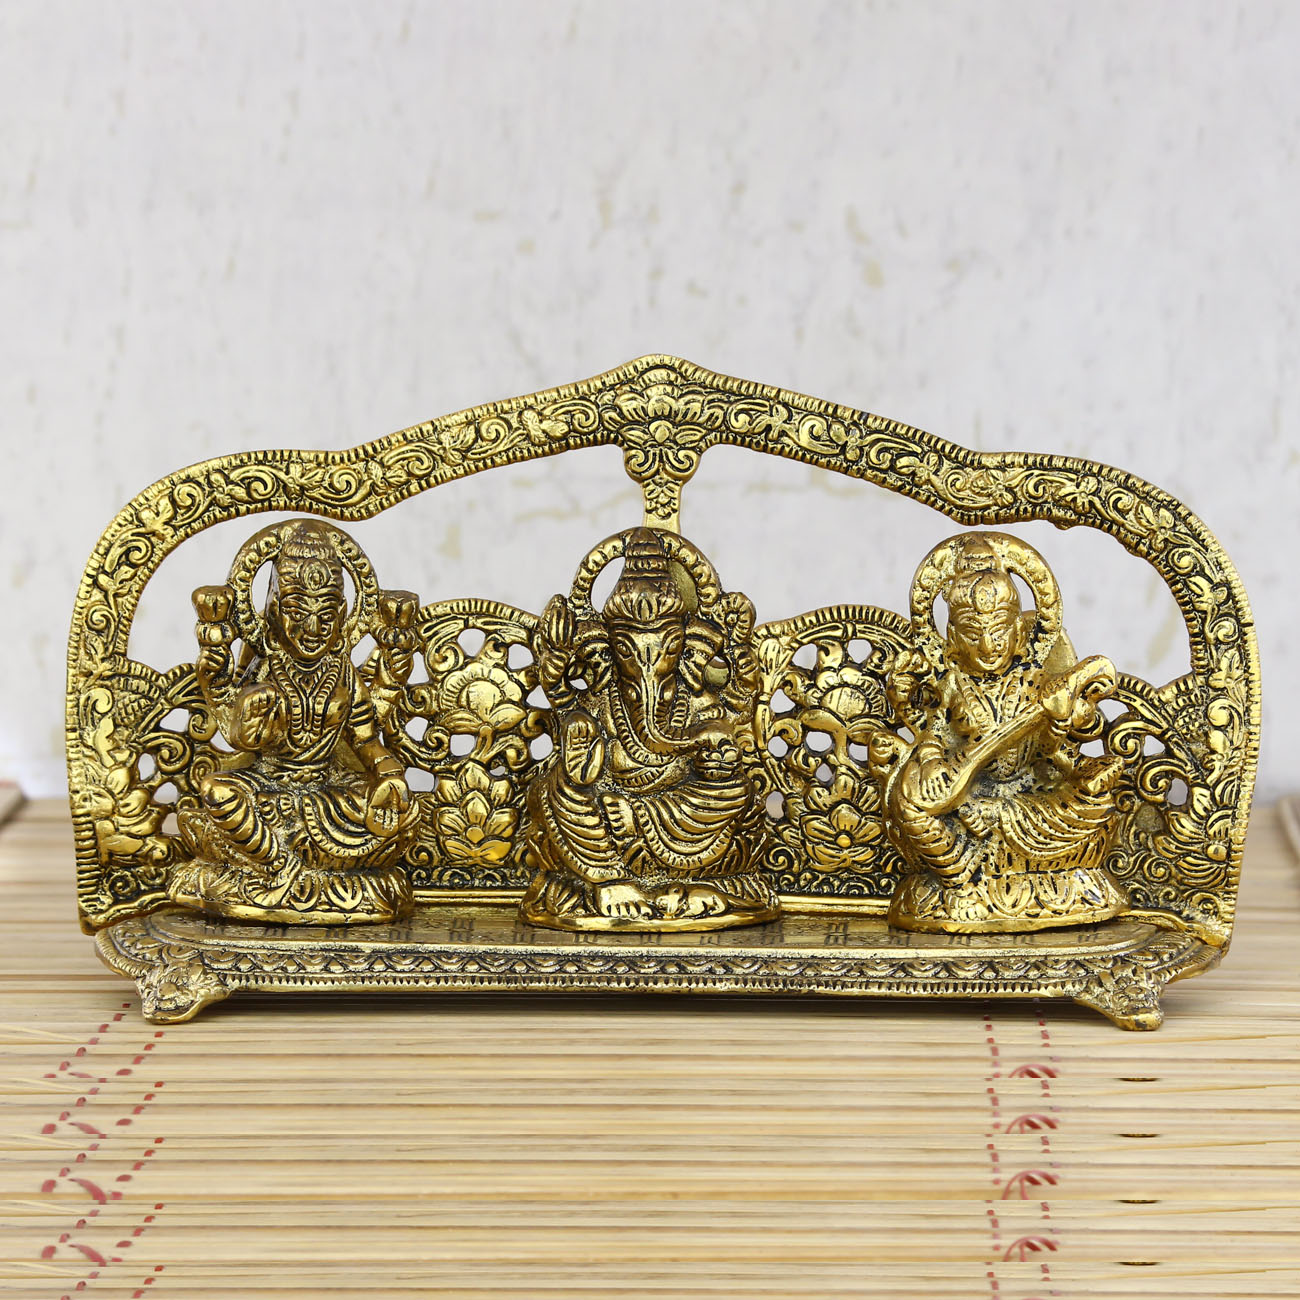 Golden Laxmi Ganesha Saraswati Shining Religious Decorative Showpiece Indian Home Decor